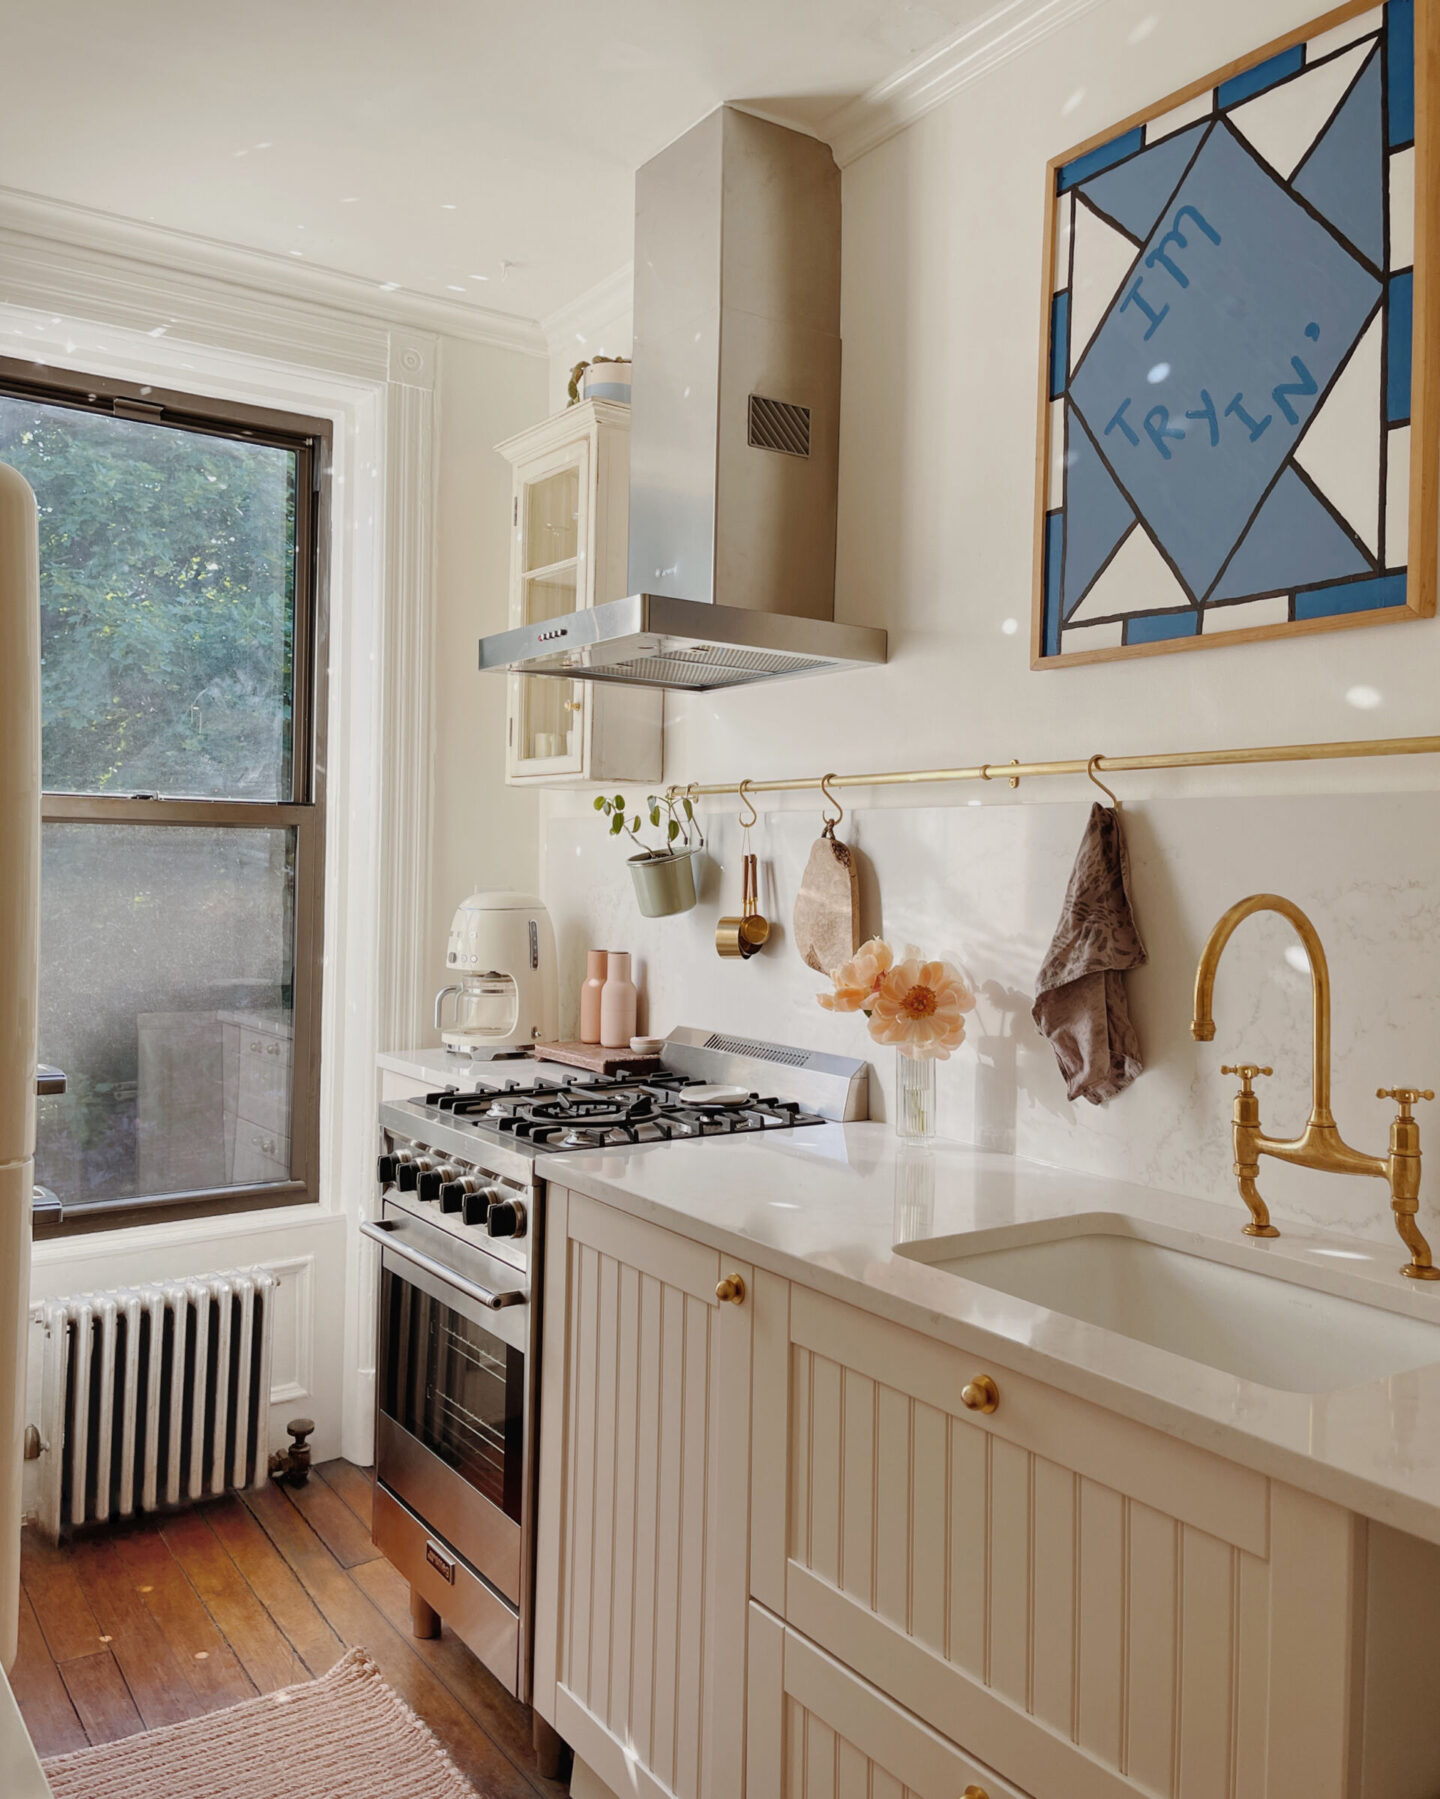 Gorgeous Nieu Cabinet Doors in ReserveHome's Brooklyn Brownstone remodeled kitchen. #customkitchen #cabinetrefacing #kitchenremodel #beforeandafter